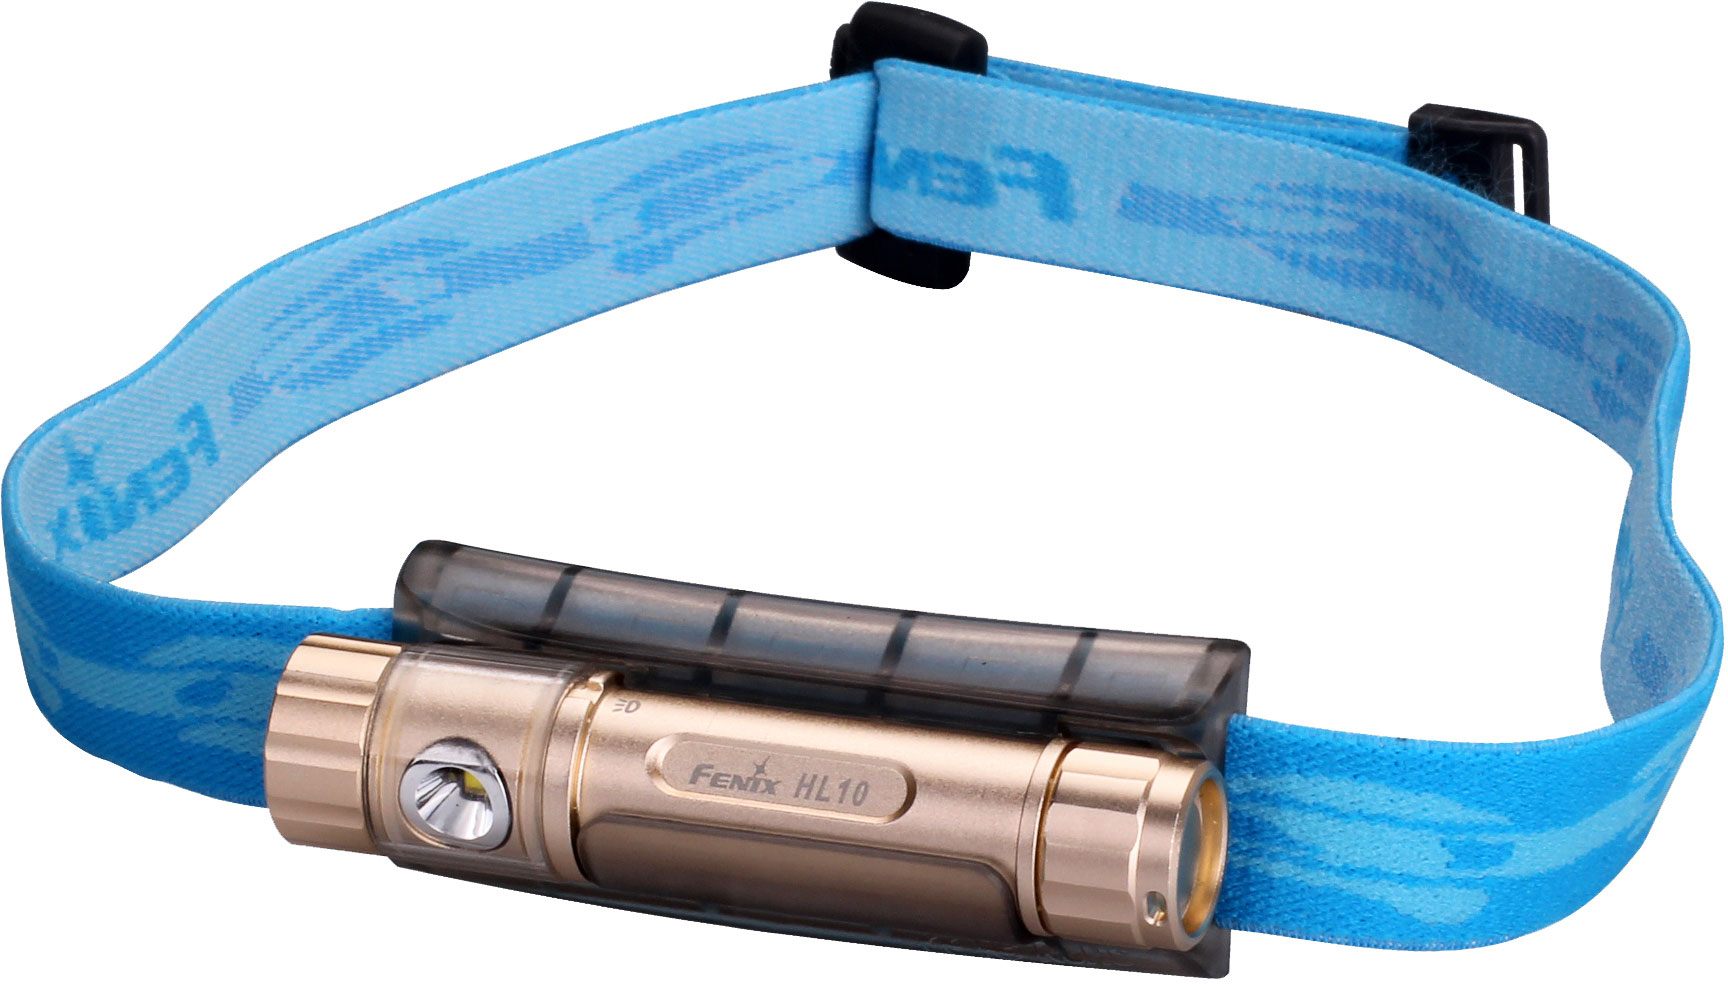 Fenix HL10 LED Headlamp, Gold, 70 Max Lumens